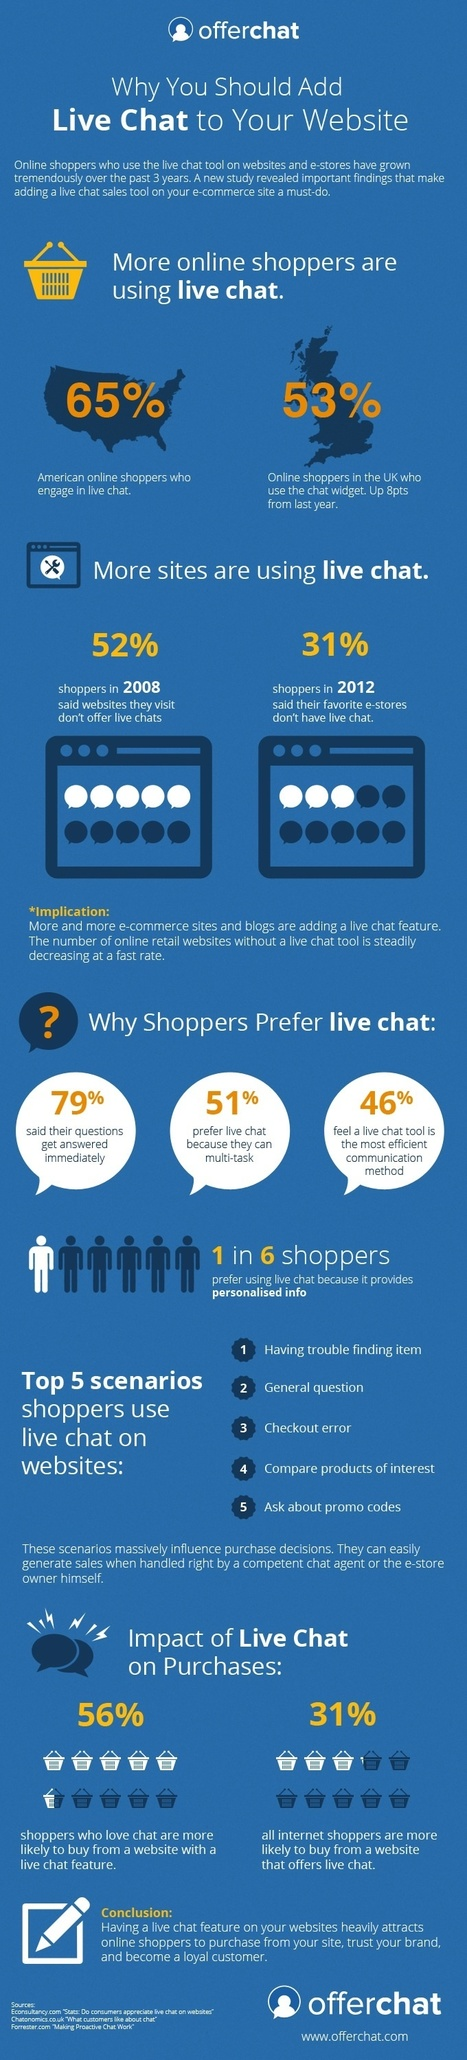 Why You Should Add Live Chat to Your Website [Infographic] - Offerchat | Online Marketing with Tech | Scoop.it